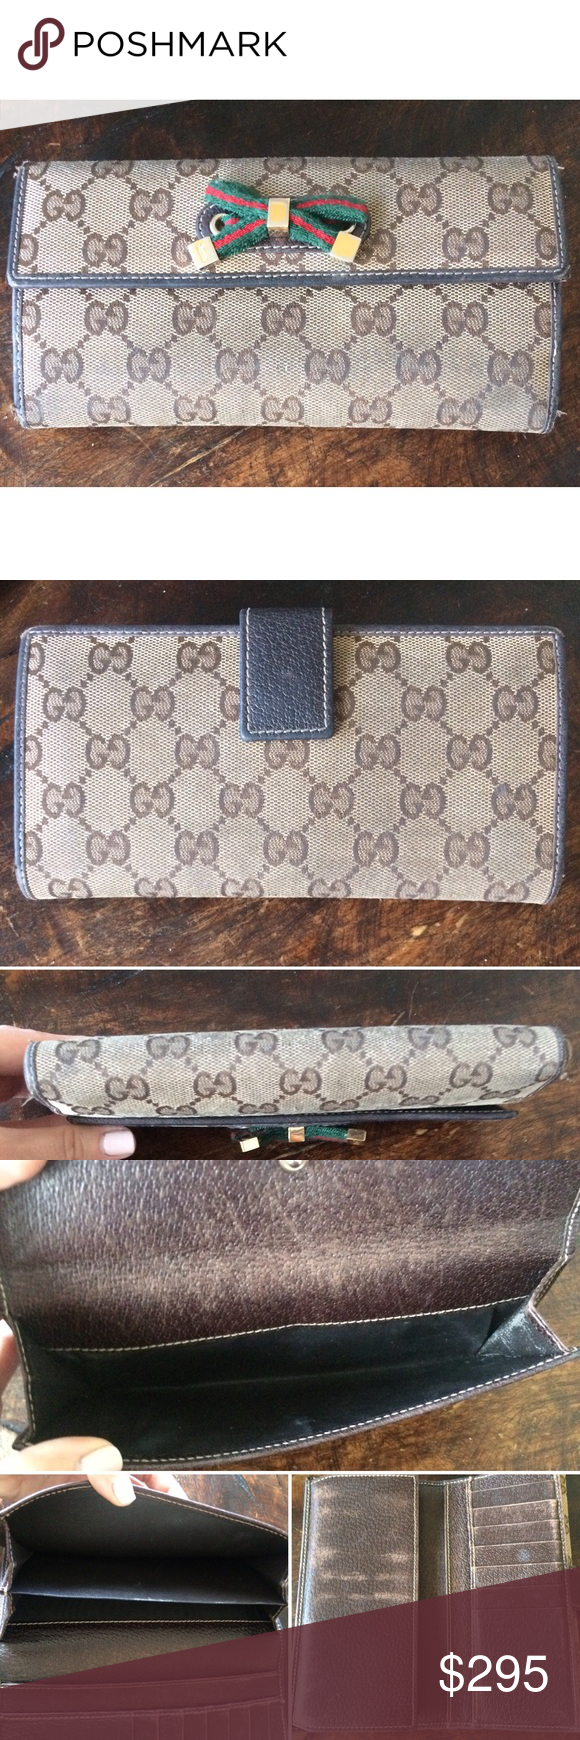 dfd6429877b Gucci top continental signature wallet with bow! Authentic Gucci top  continental signature wallet with bow! Pre loved and does have some wear  but lots of ...